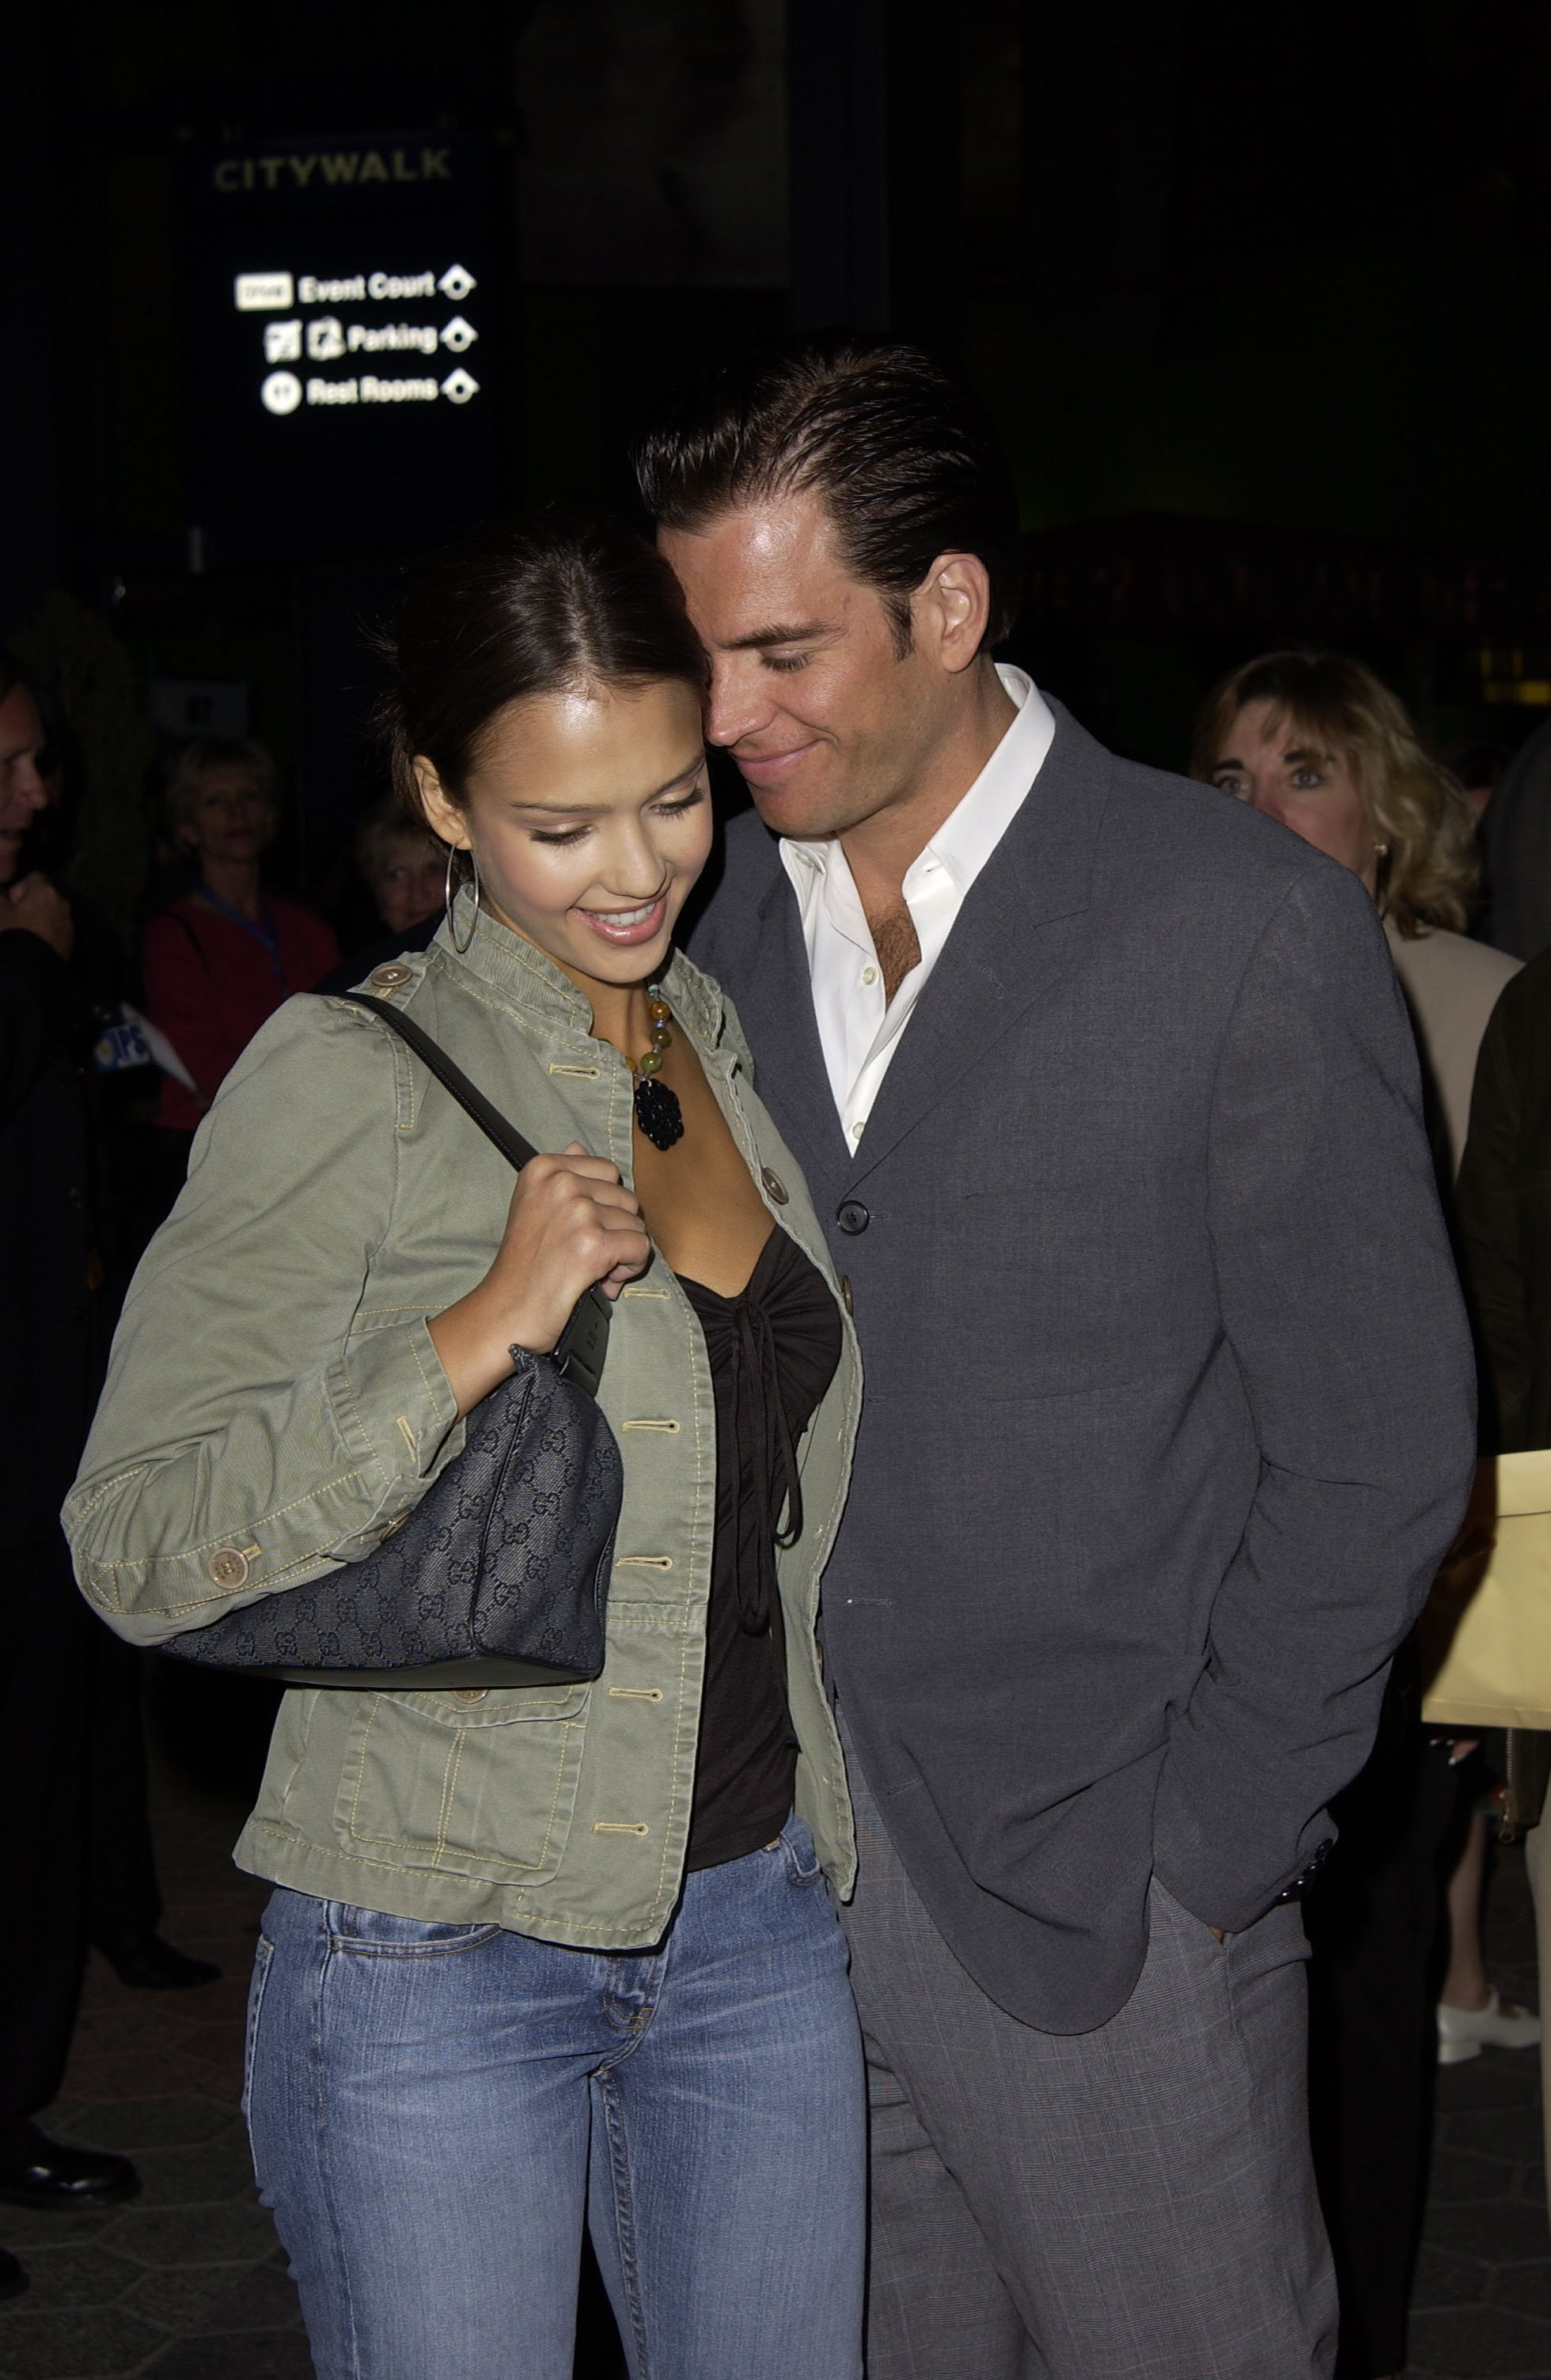 """Jessica Alba and Michael Weatherly attend the premiere of """"Ghosts of the Abyss."""" 